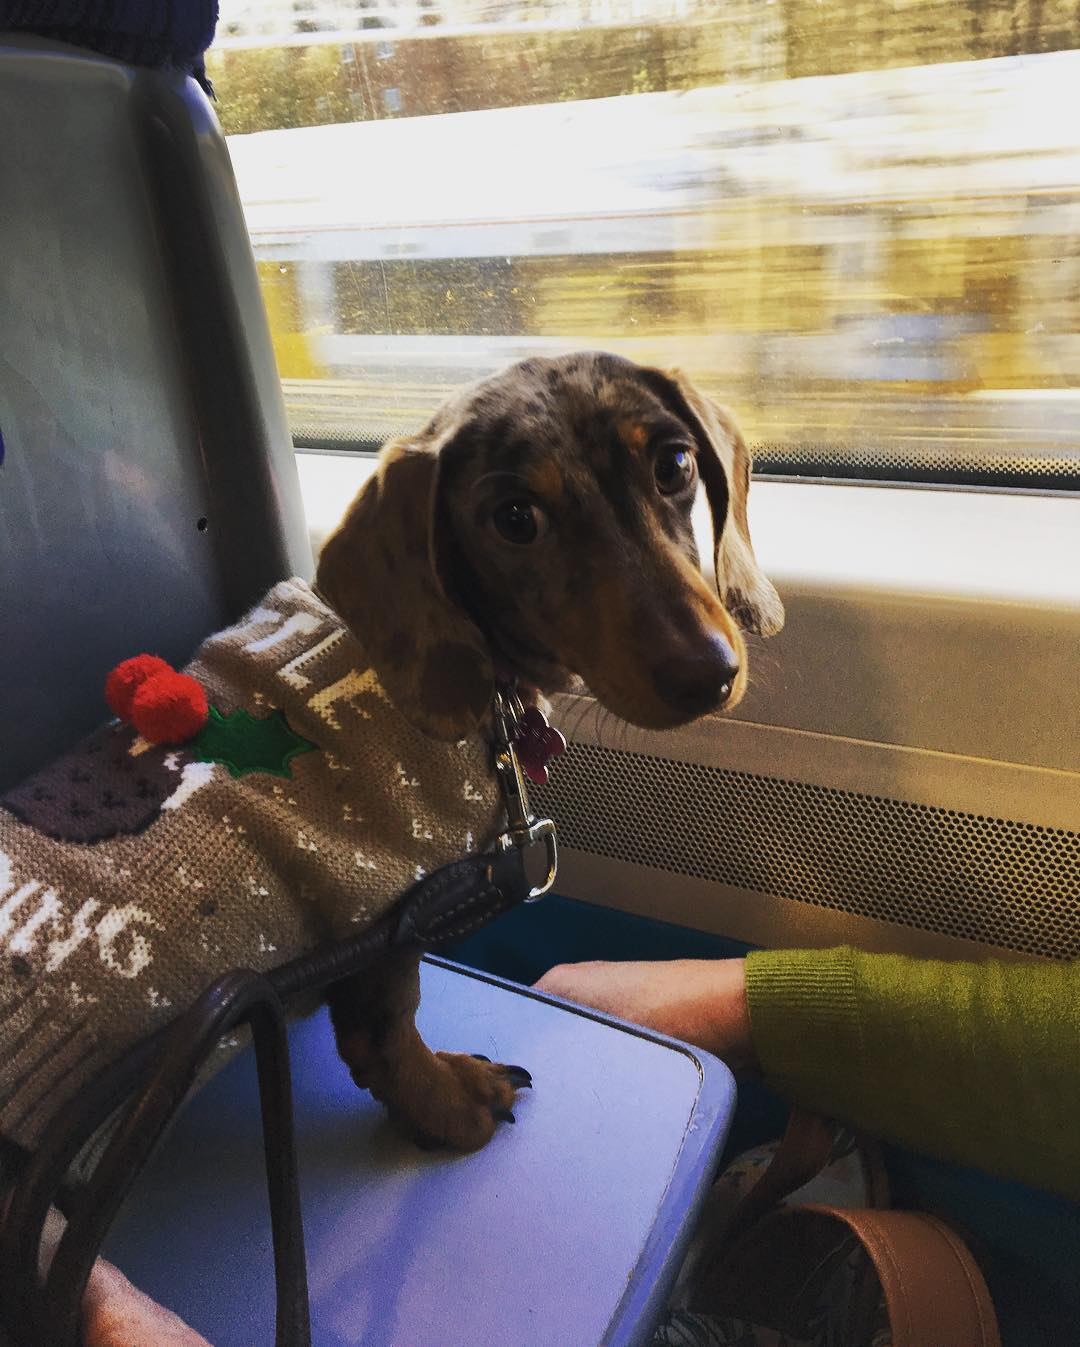 Photo: @the_dapple_dachshund